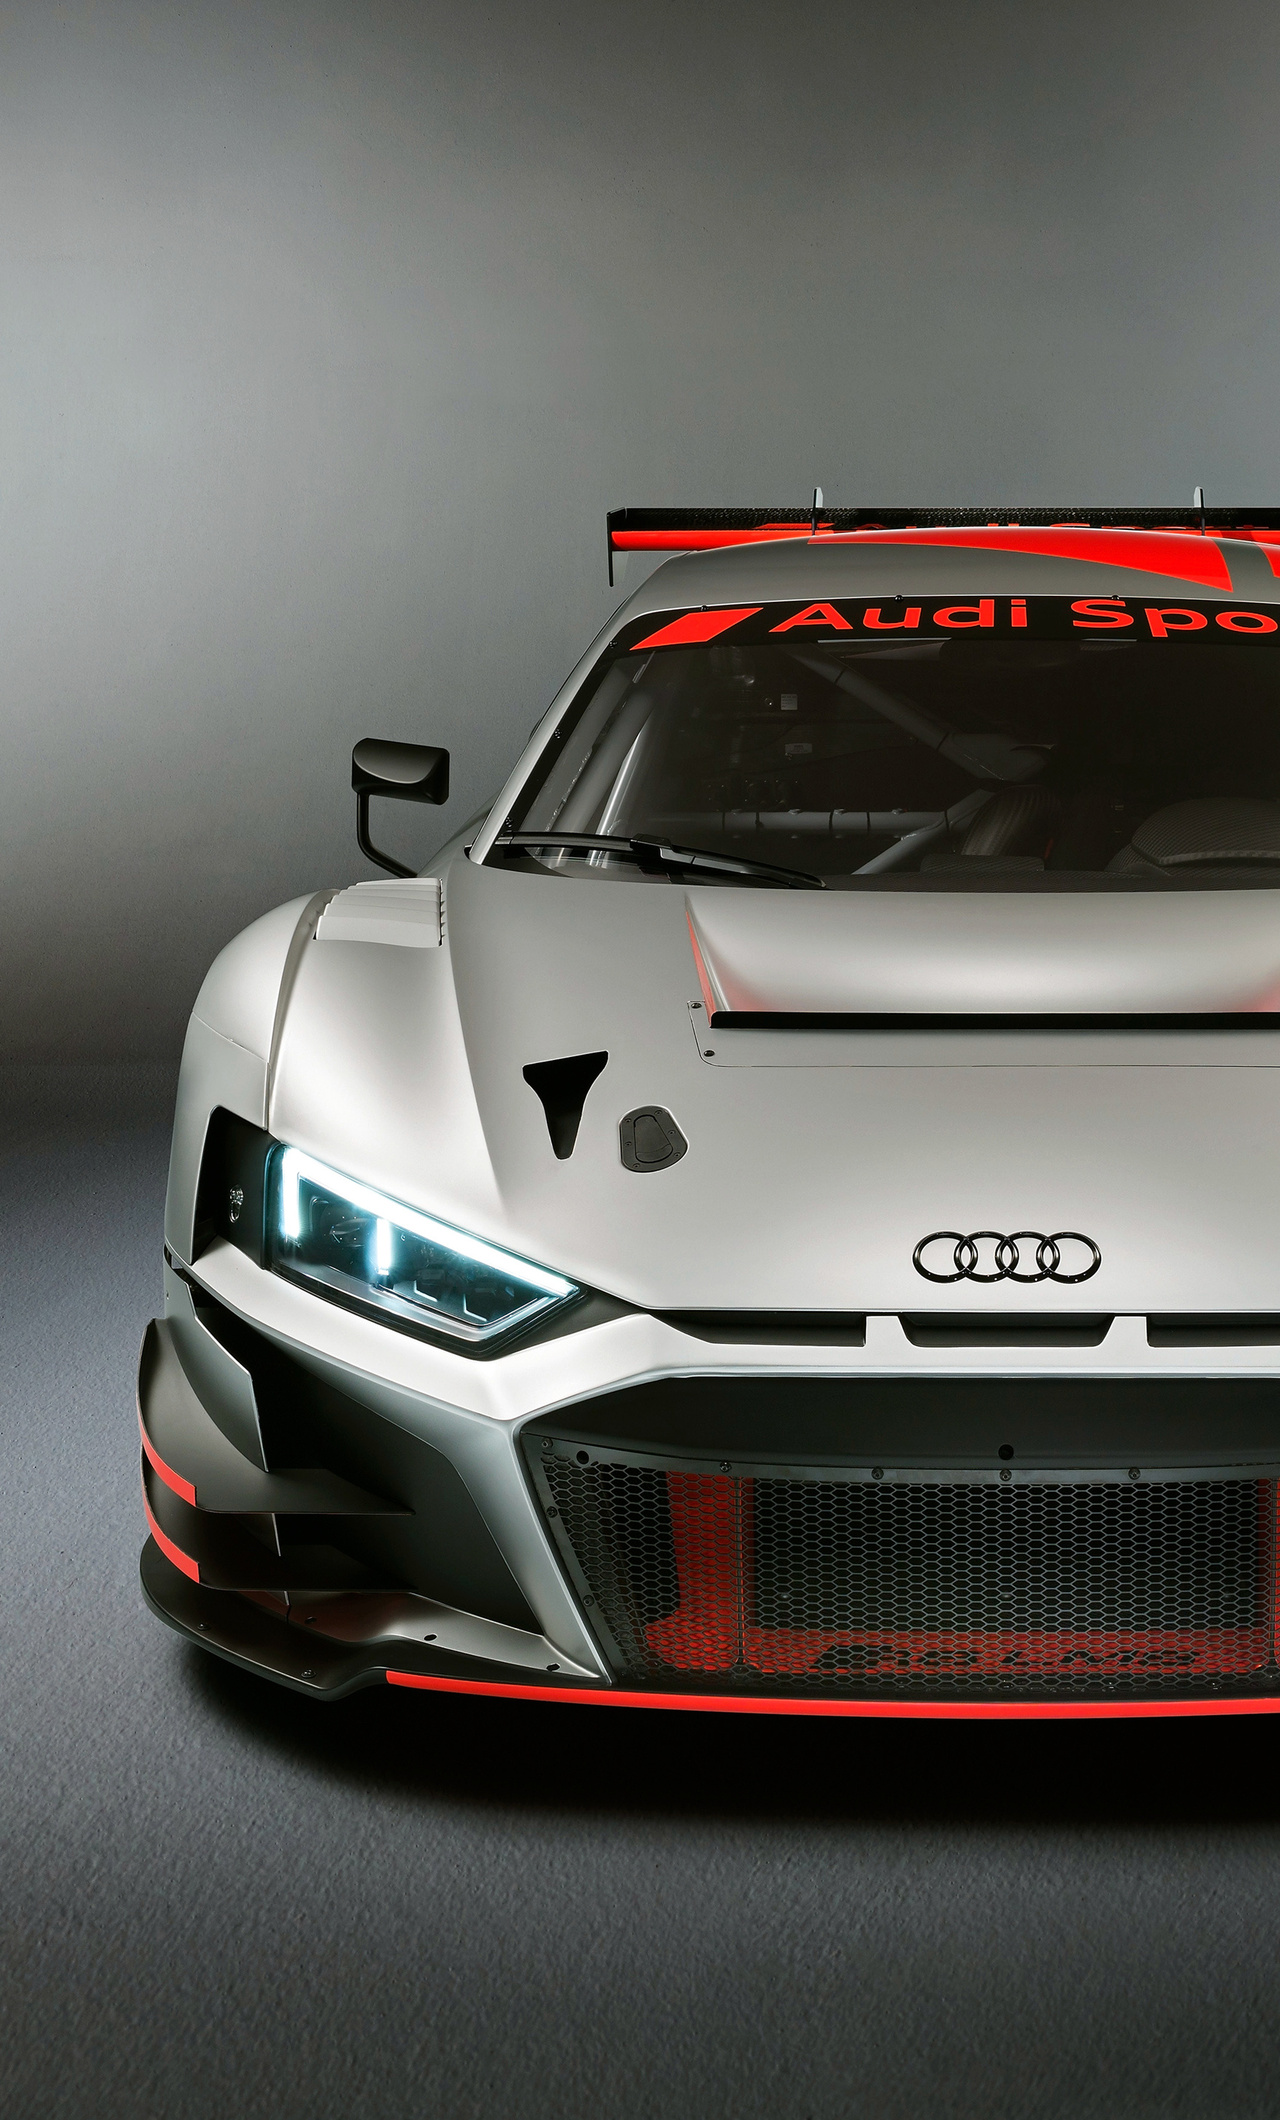 1280x2120 Audi R8 Lms 2019 4k Iphone 6 Hd 4k Wallpapers Images